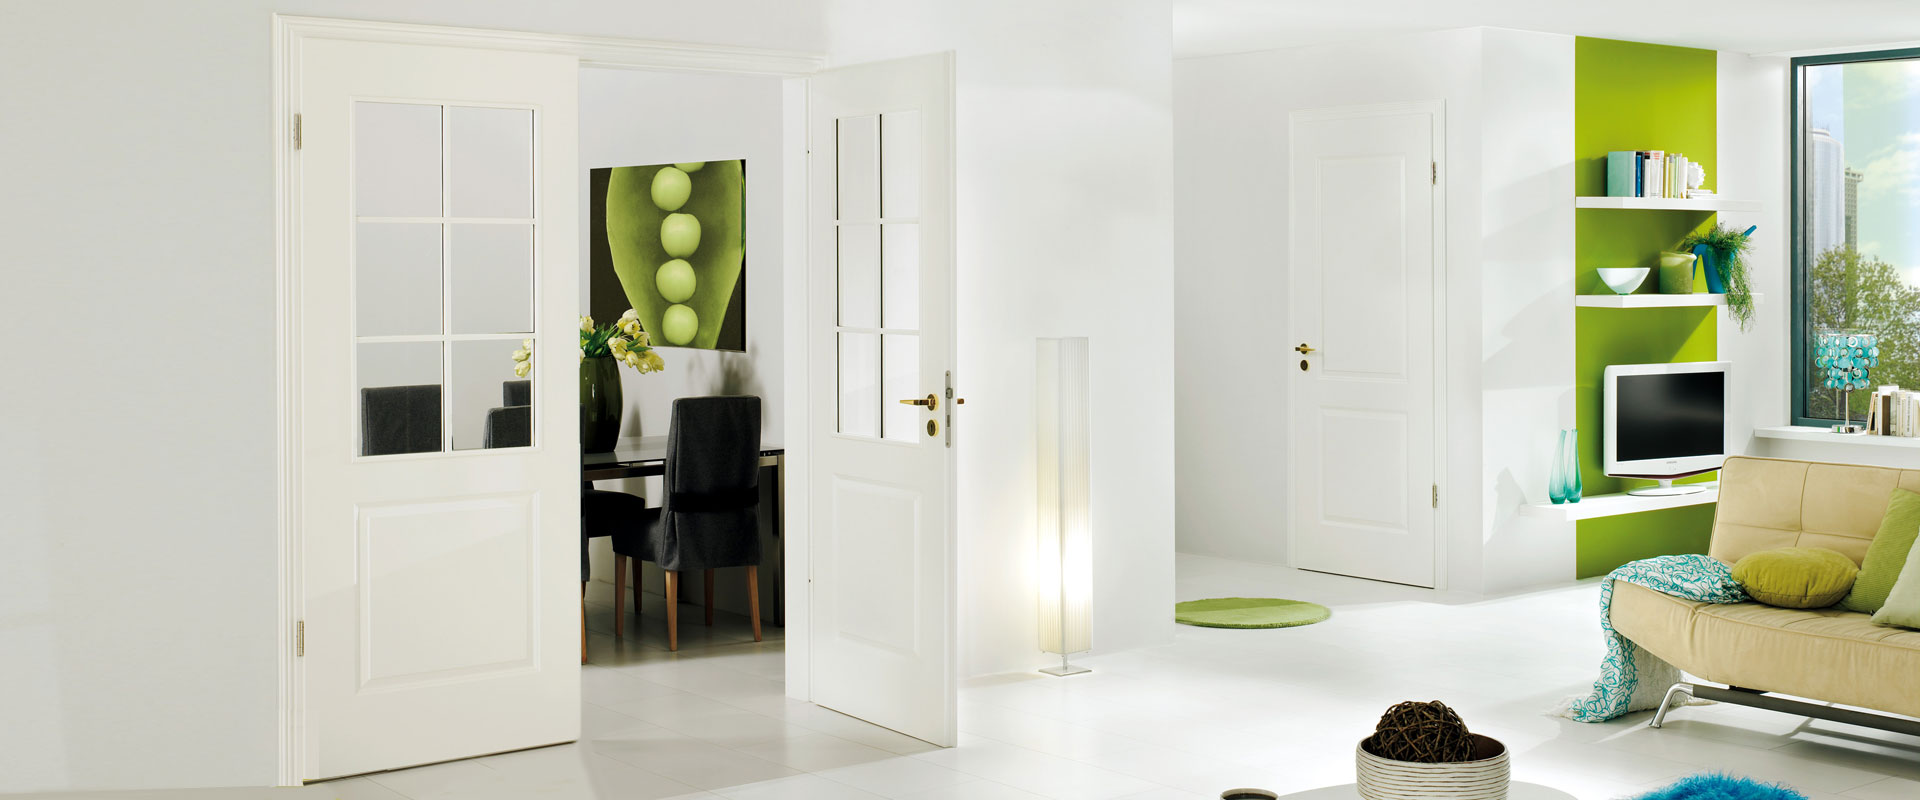 internal glazed double door